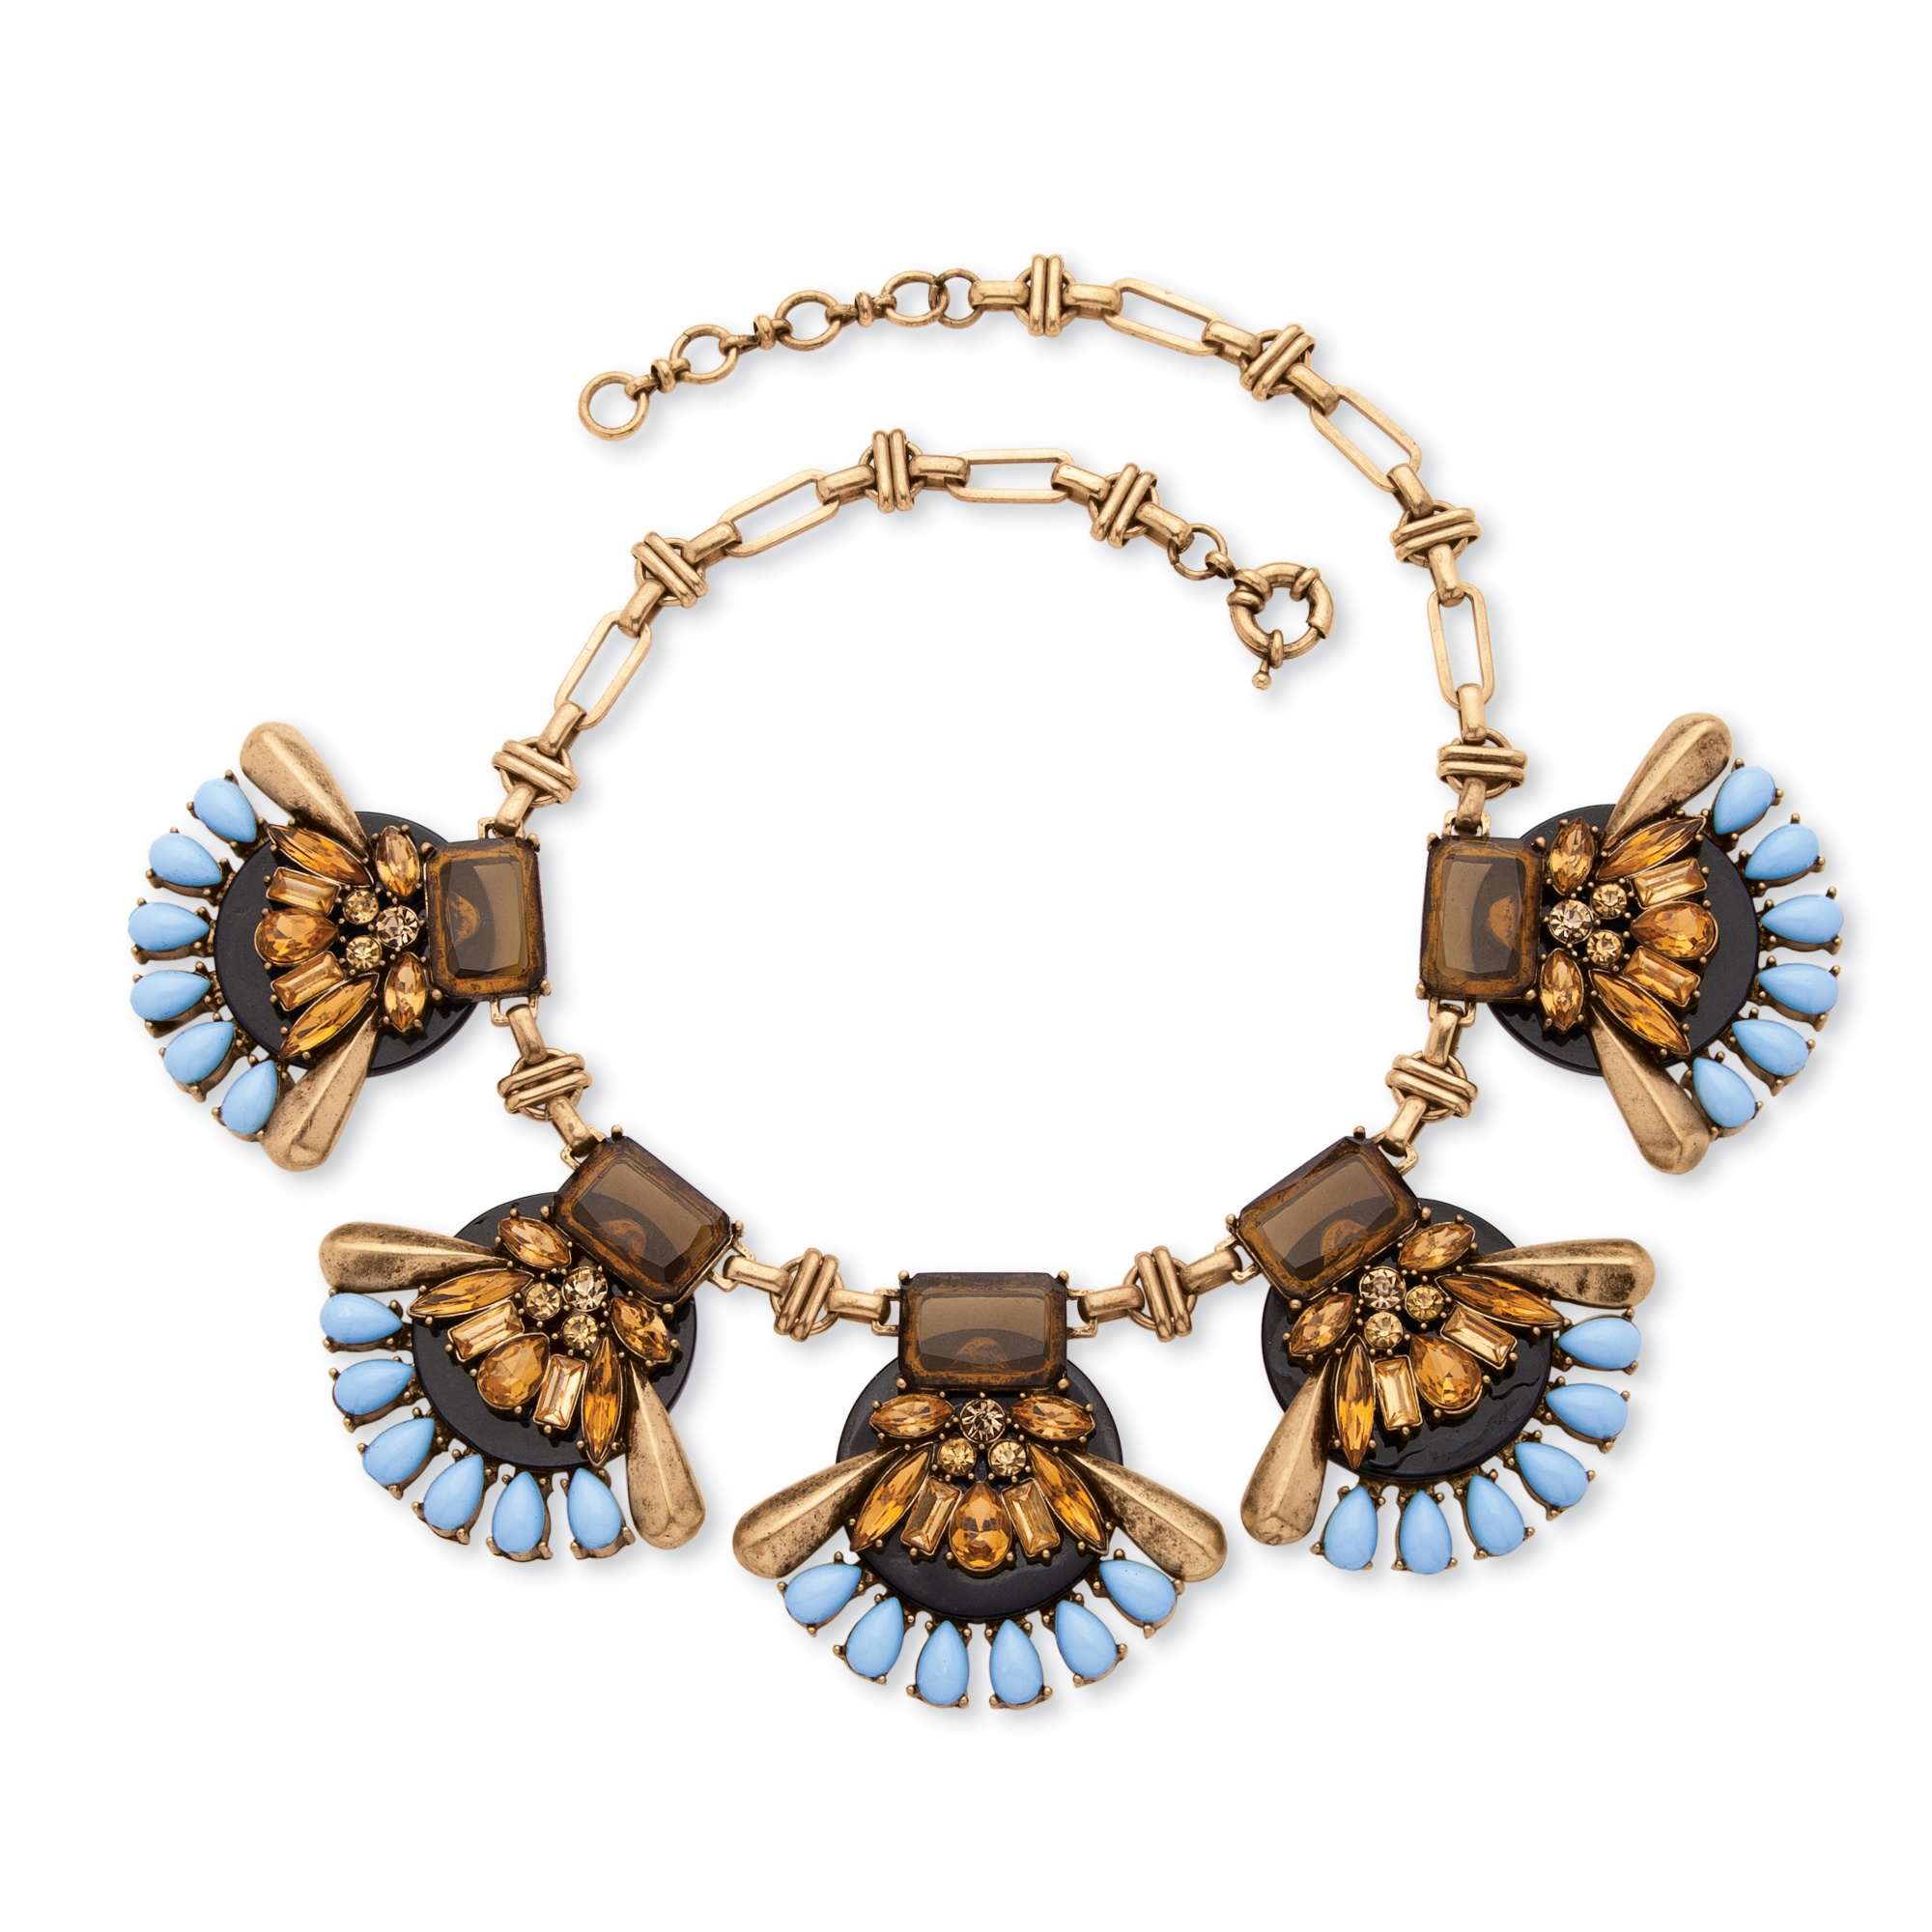 Brown and Blue Crystal Lucite Open Fan Necklace with Vintage-Style Chain in Antique Gold Tone